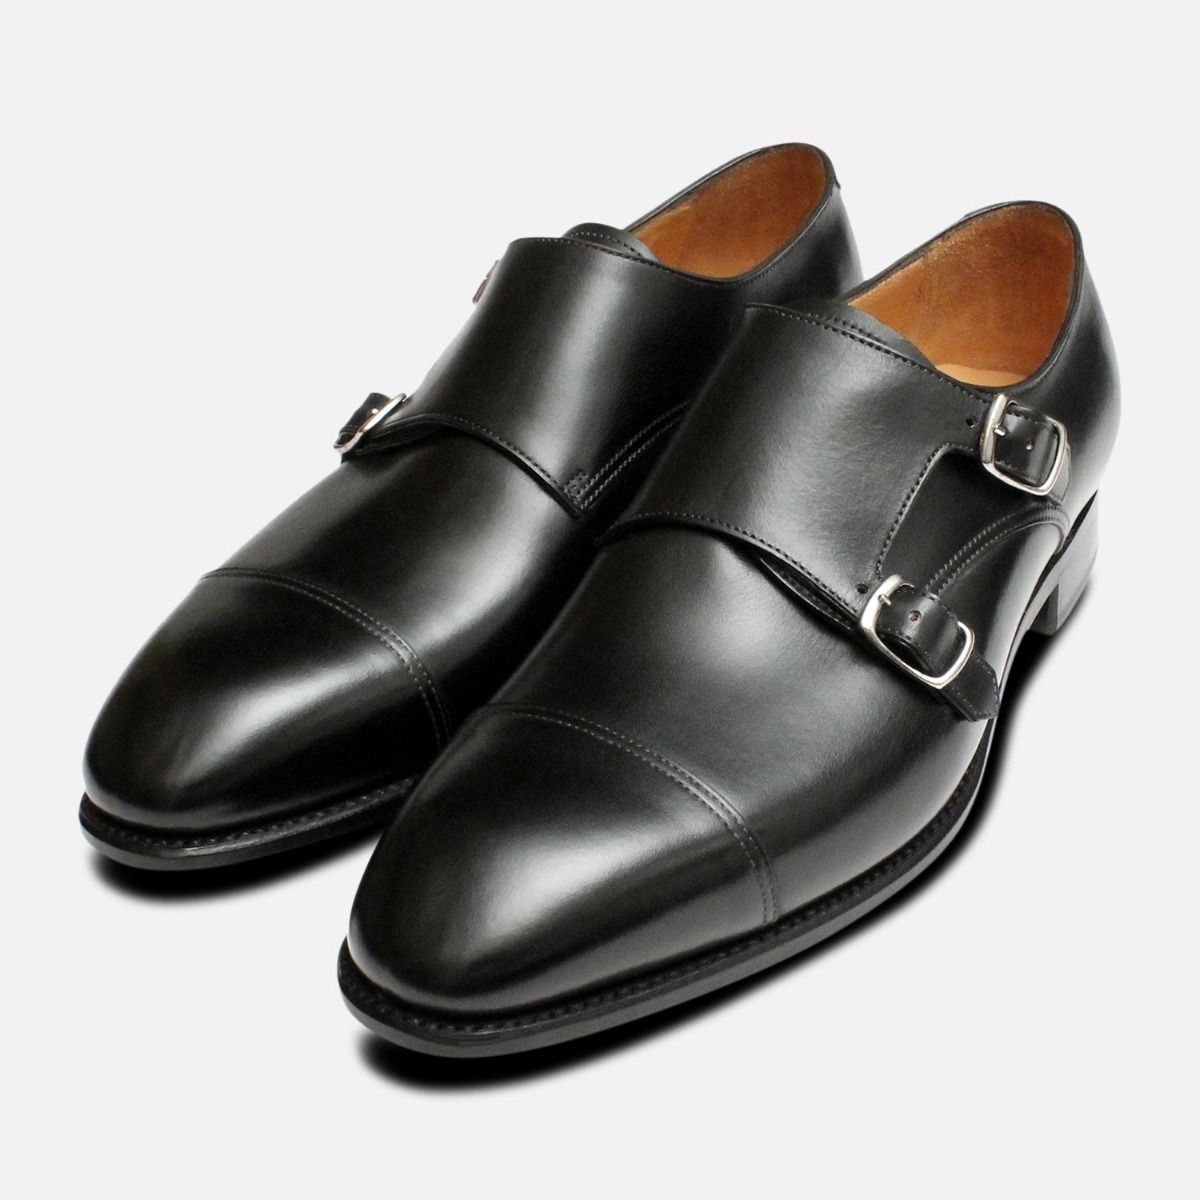 0c24ec07806e0 Carlos Santos Double Buckle Monk Strap Black Shoes